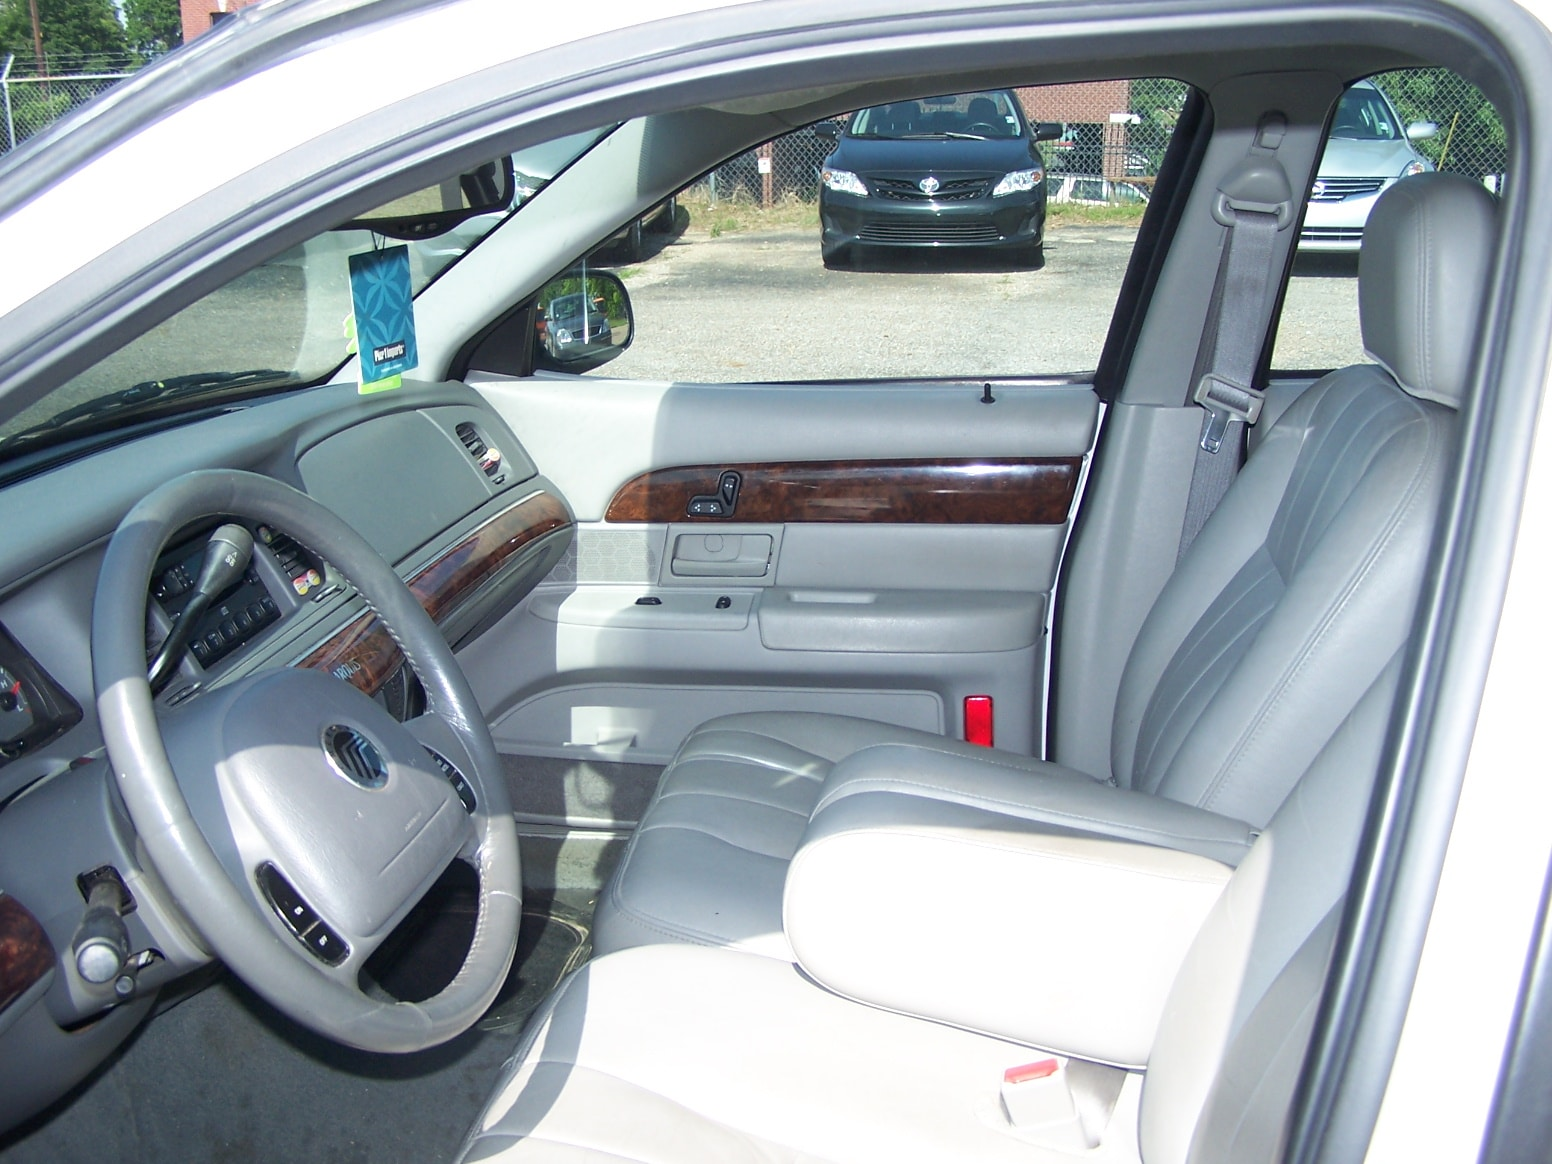 Used 2004 Mercury Grand Marquis Ls For Sale In Oxford Ms